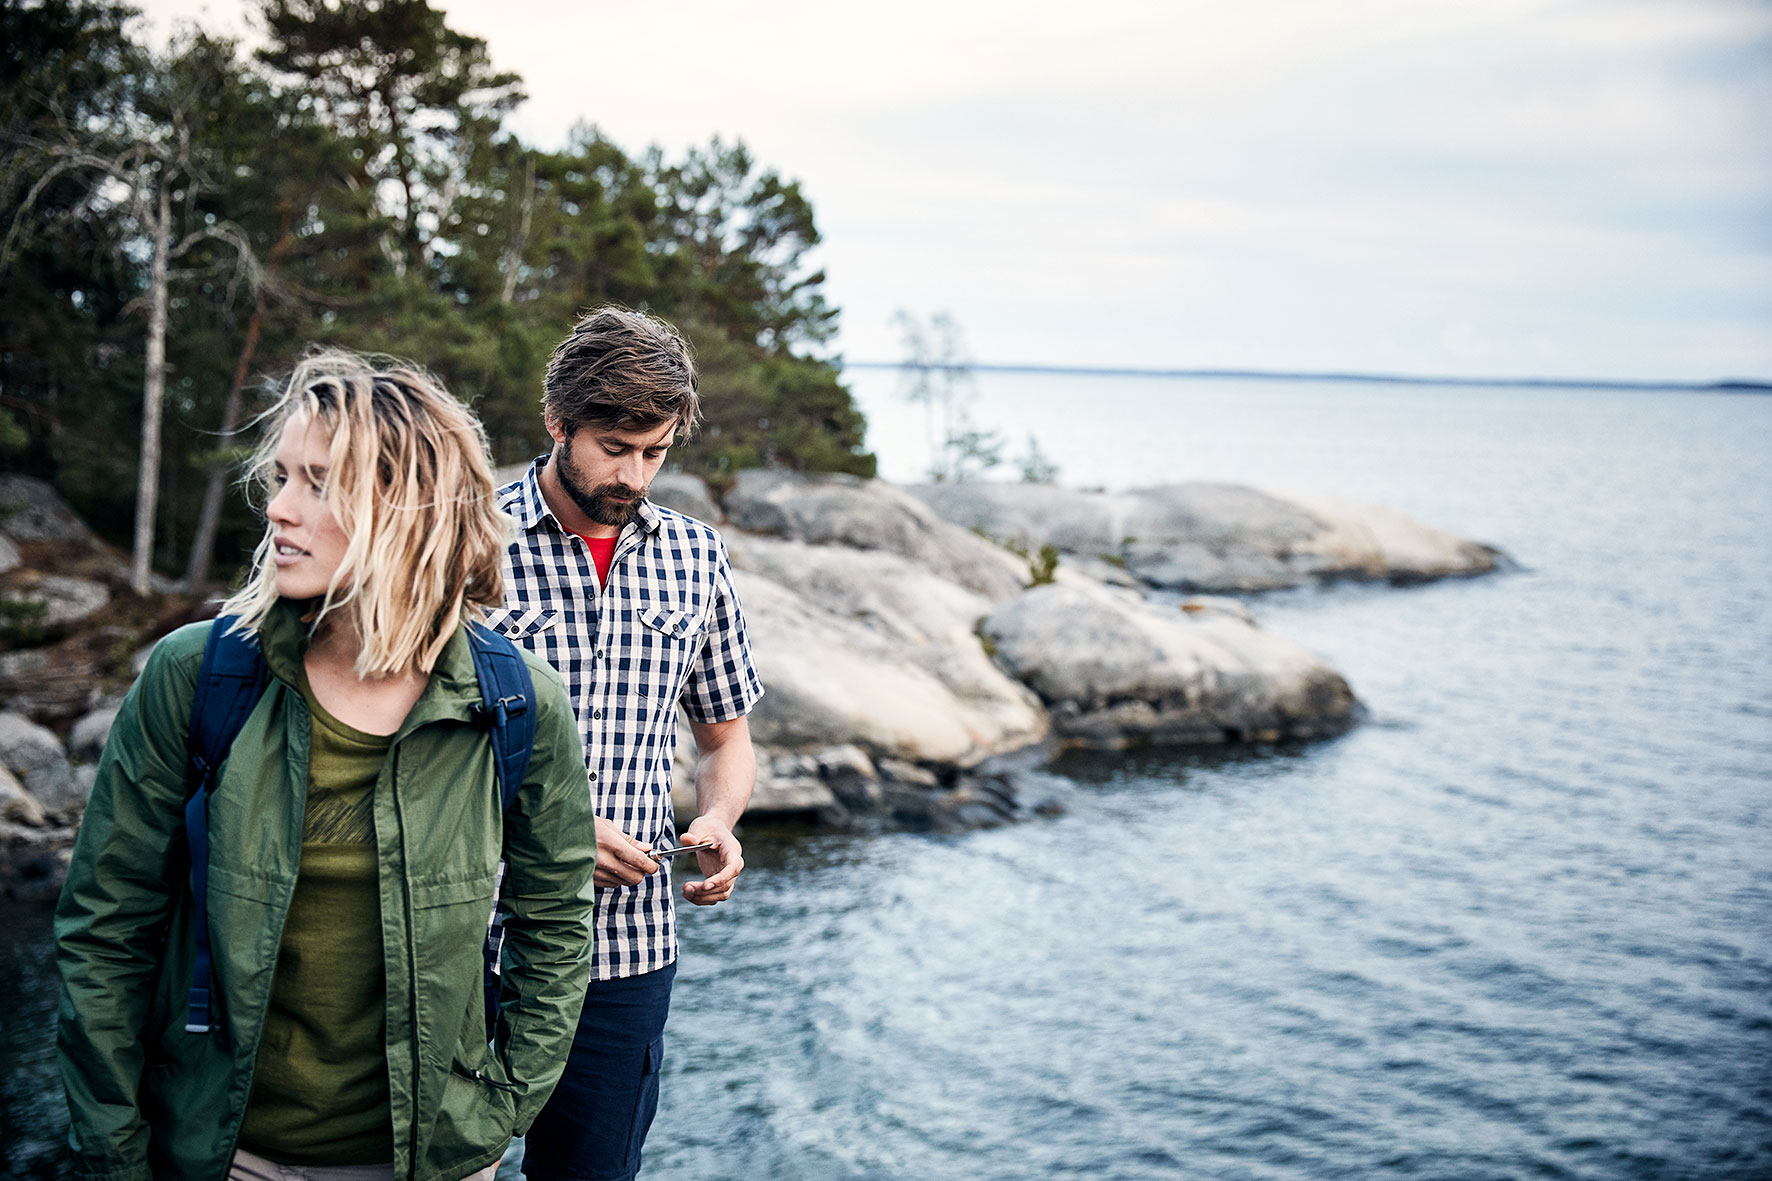 Couple standing on a cliff overlooking the sea near stockolm, Sweden. They are wearing outdoor clothing by a fair fashion brand Hess Natur